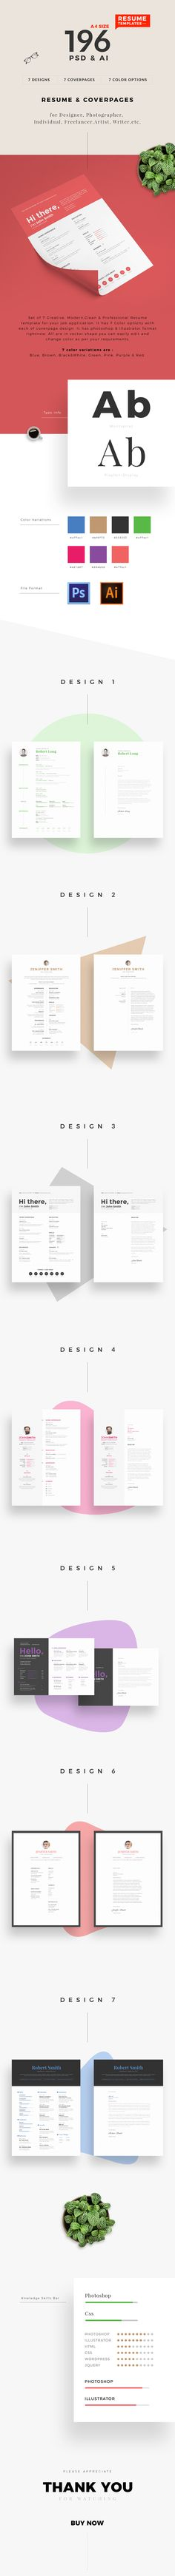 Set of 7 Creative, Modern,Clean & Professional Resume template for your job application. It has 7 Color options with each of coverpage design. It has photoshop & illustrator format rightnow. All are in vector shape you can easily edit and change color as per your requrements.  7 color variations are : Blue, Brown, Black&White, Green, Pink, Purple & Red.